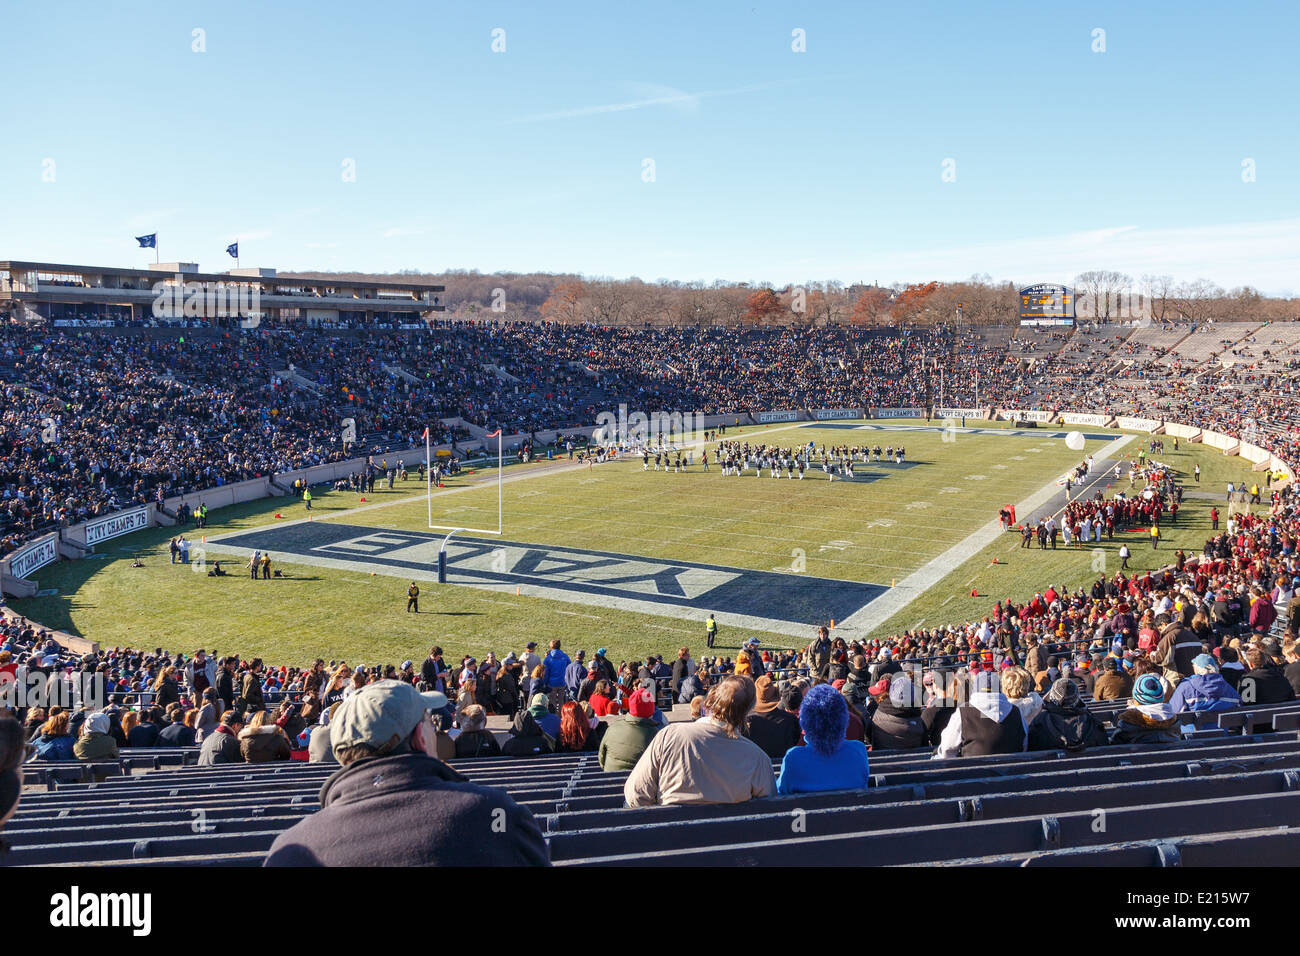 Harvard-Yale football game 2013 from inside the Yale Bowl at New Haven, CT, USA on November 23, 2013. - Stock Image